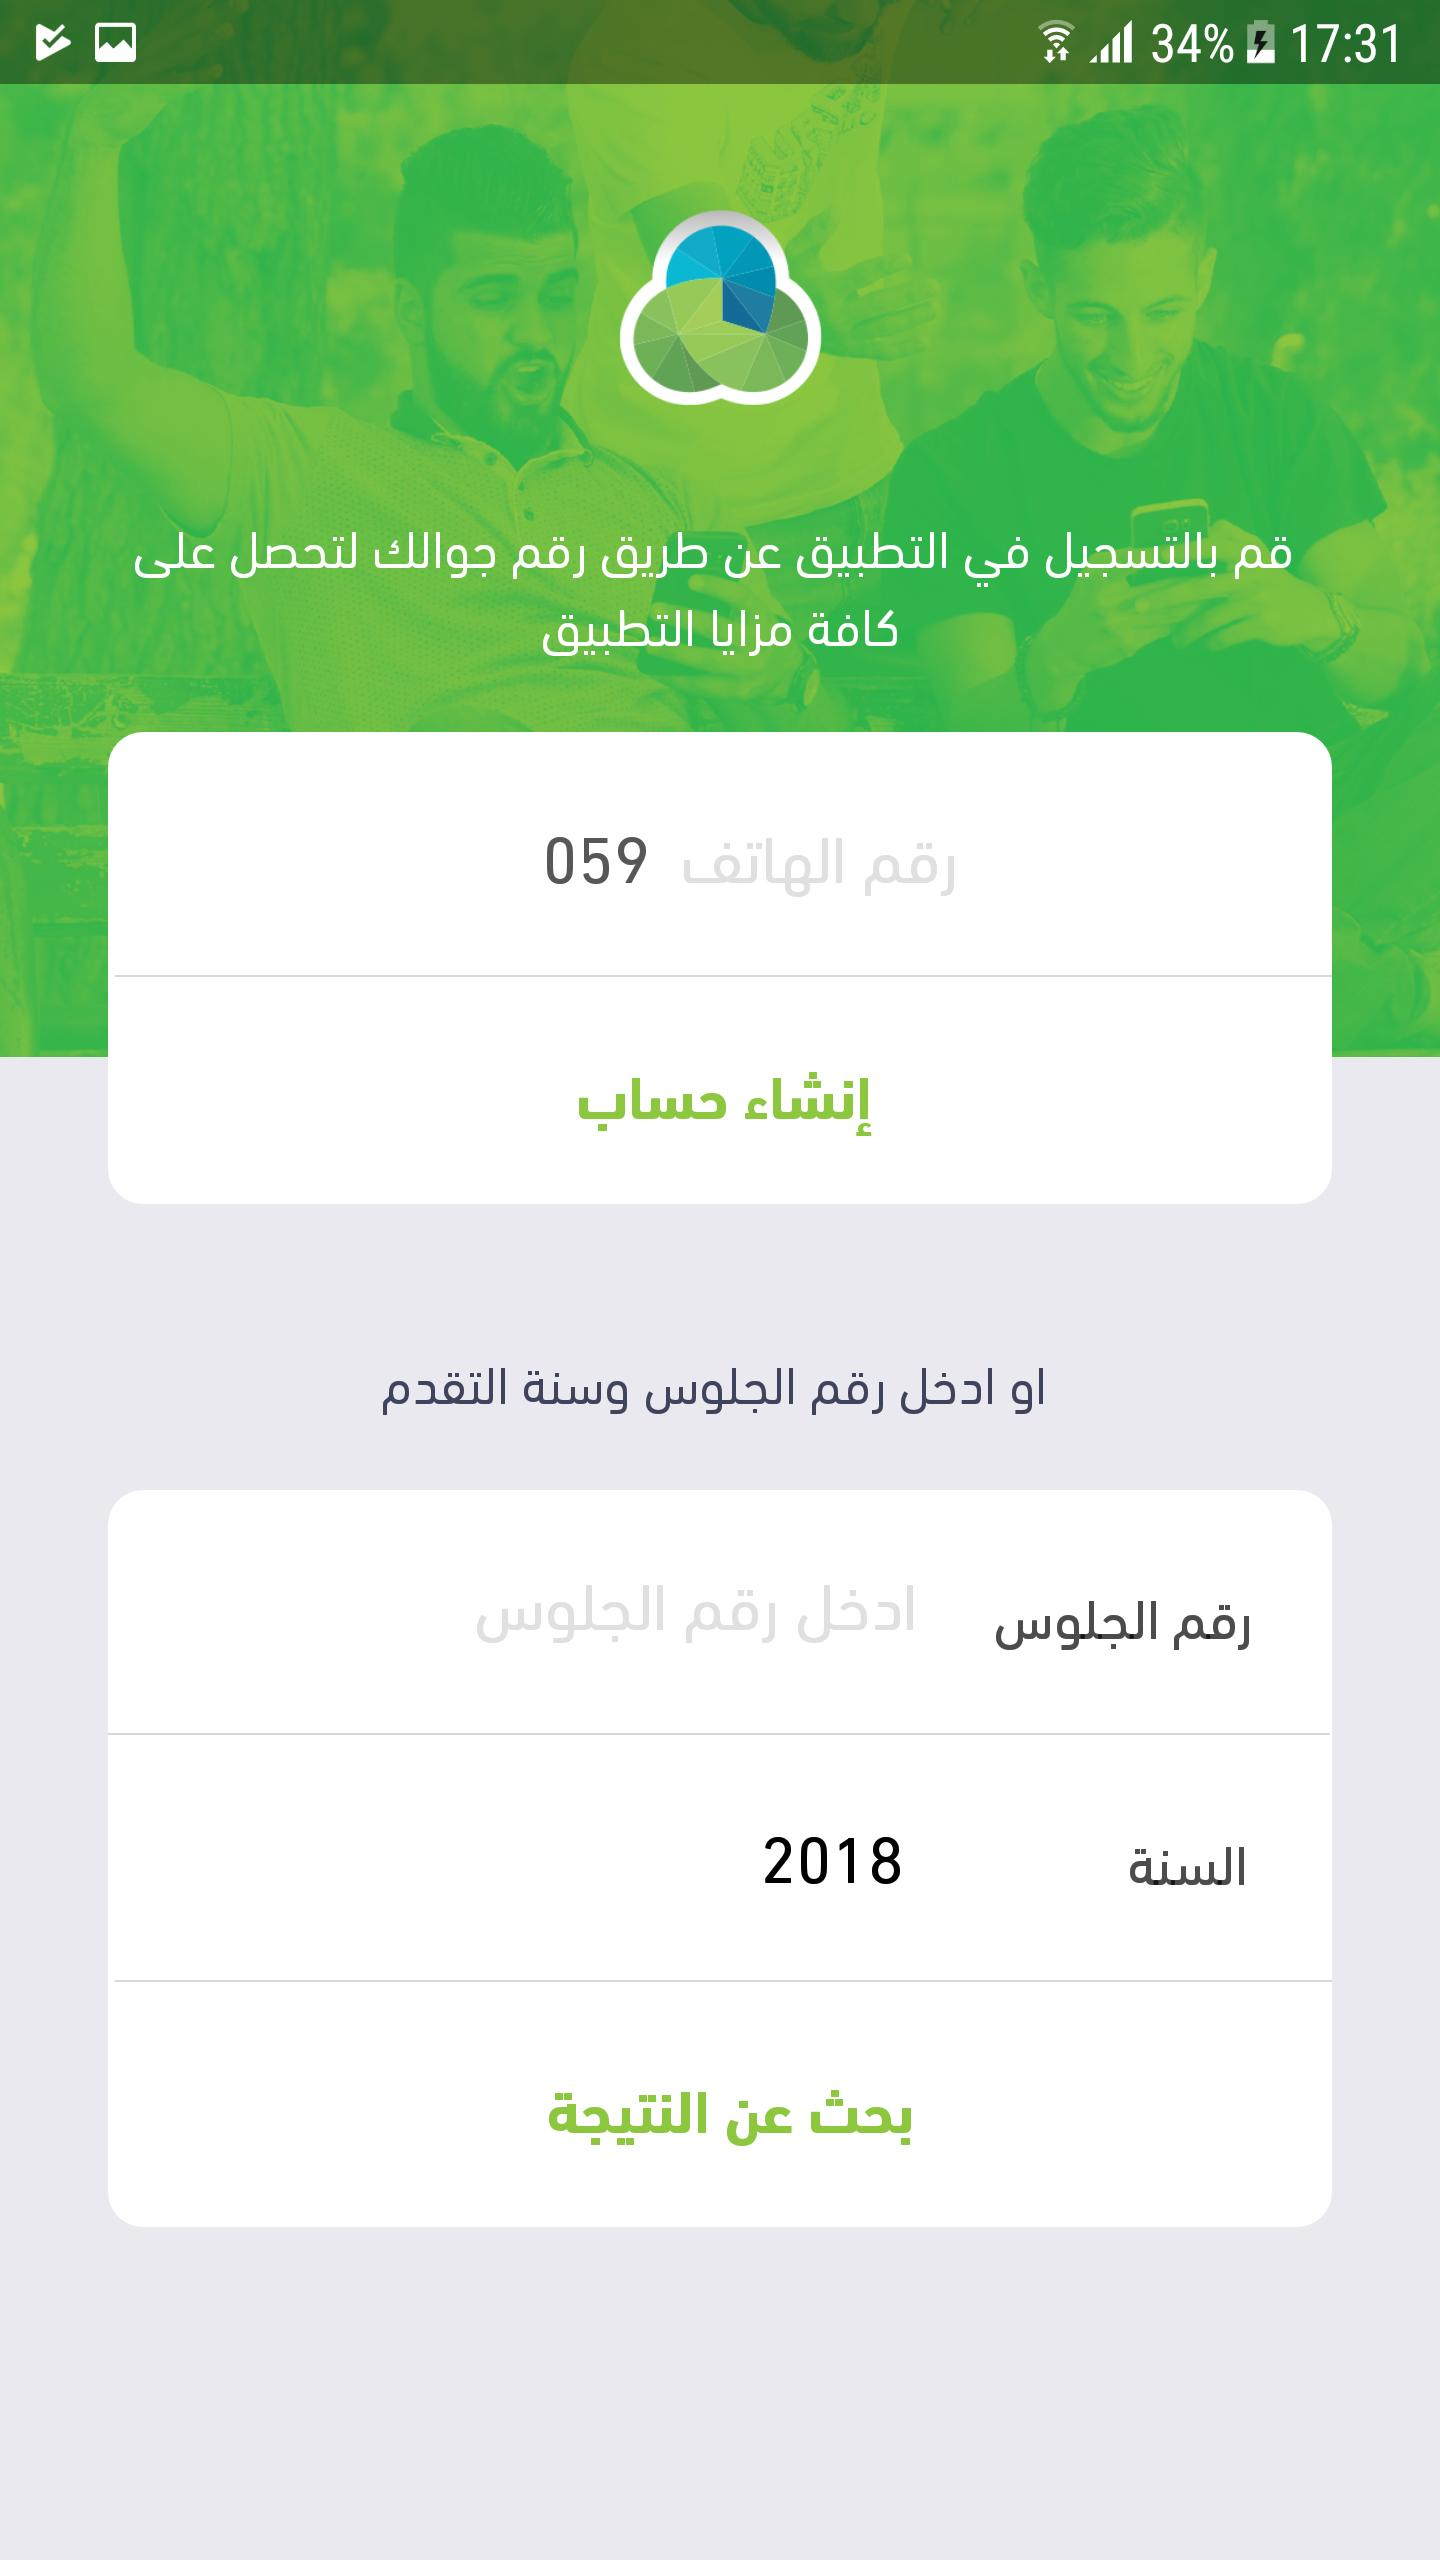 Injaz for Android - APK Download